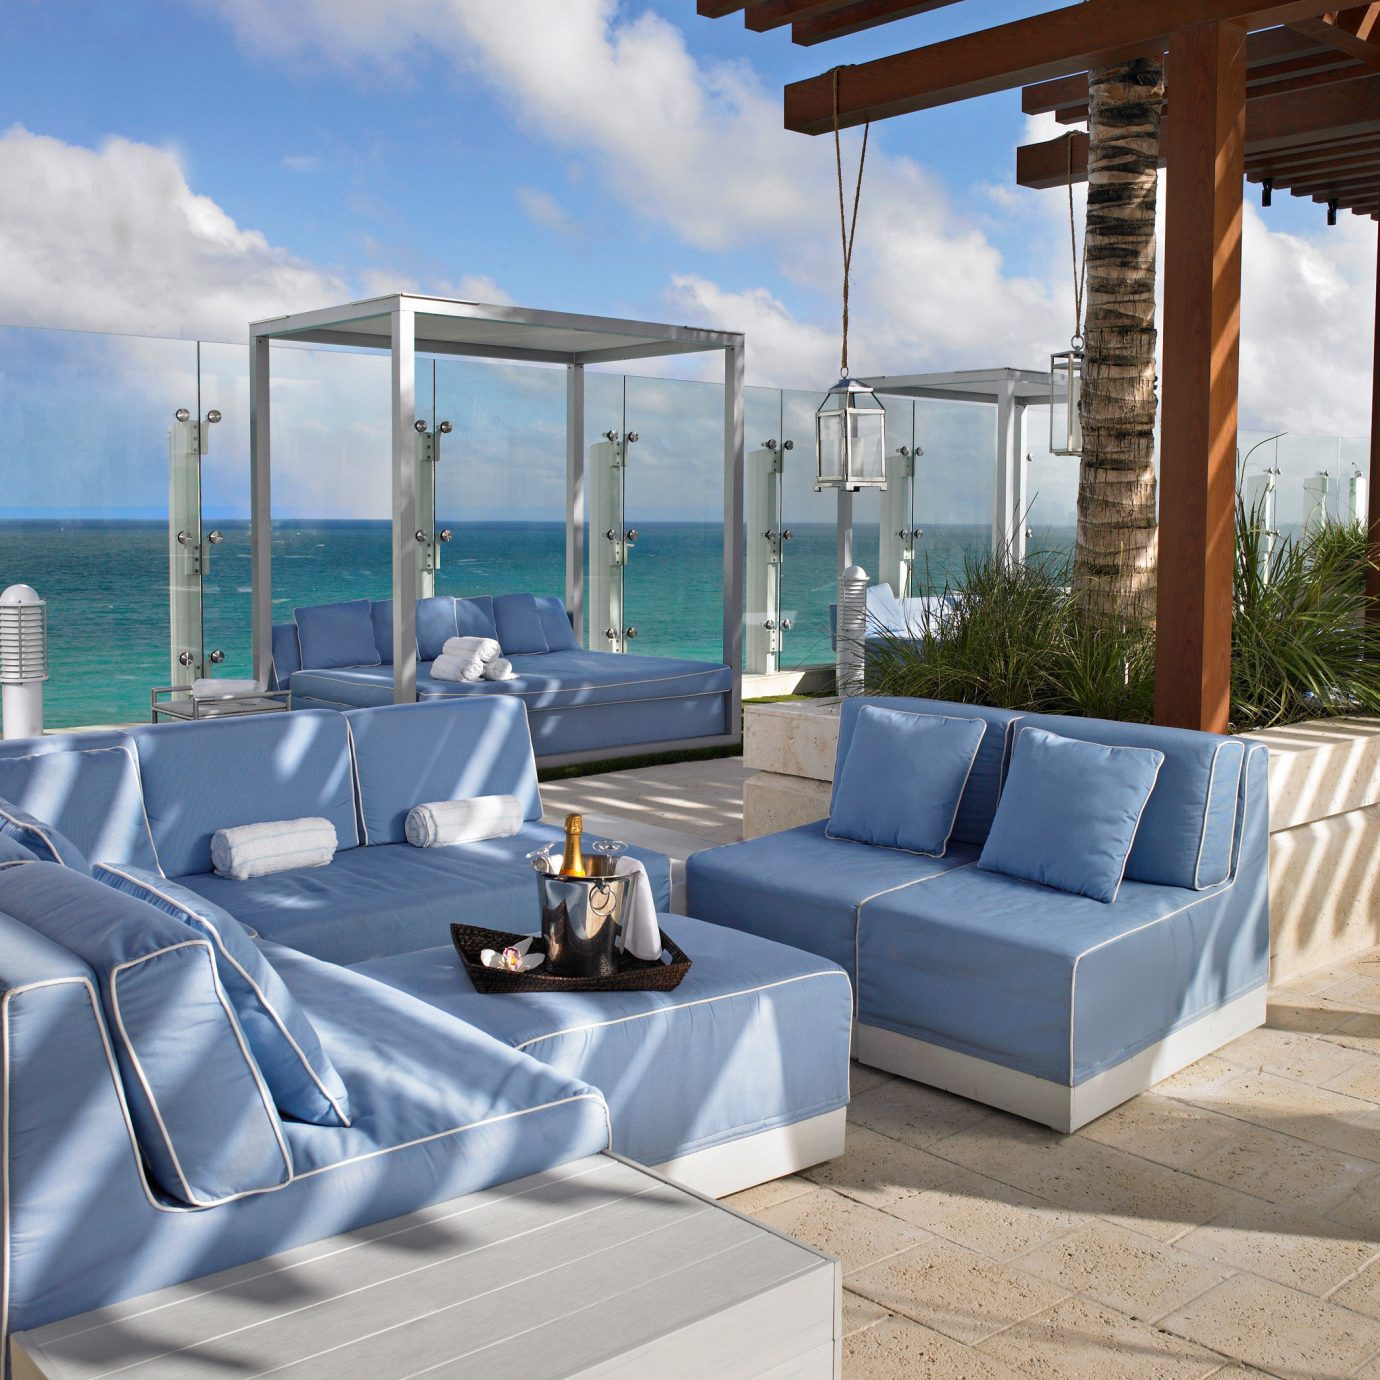 Beachfront Lounge Luxury Pool Rooftop Scenic views Waterfront sky property Resort swimming pool yacht Villa vehicle condominium outdoor structure passenger ship Boat living room day